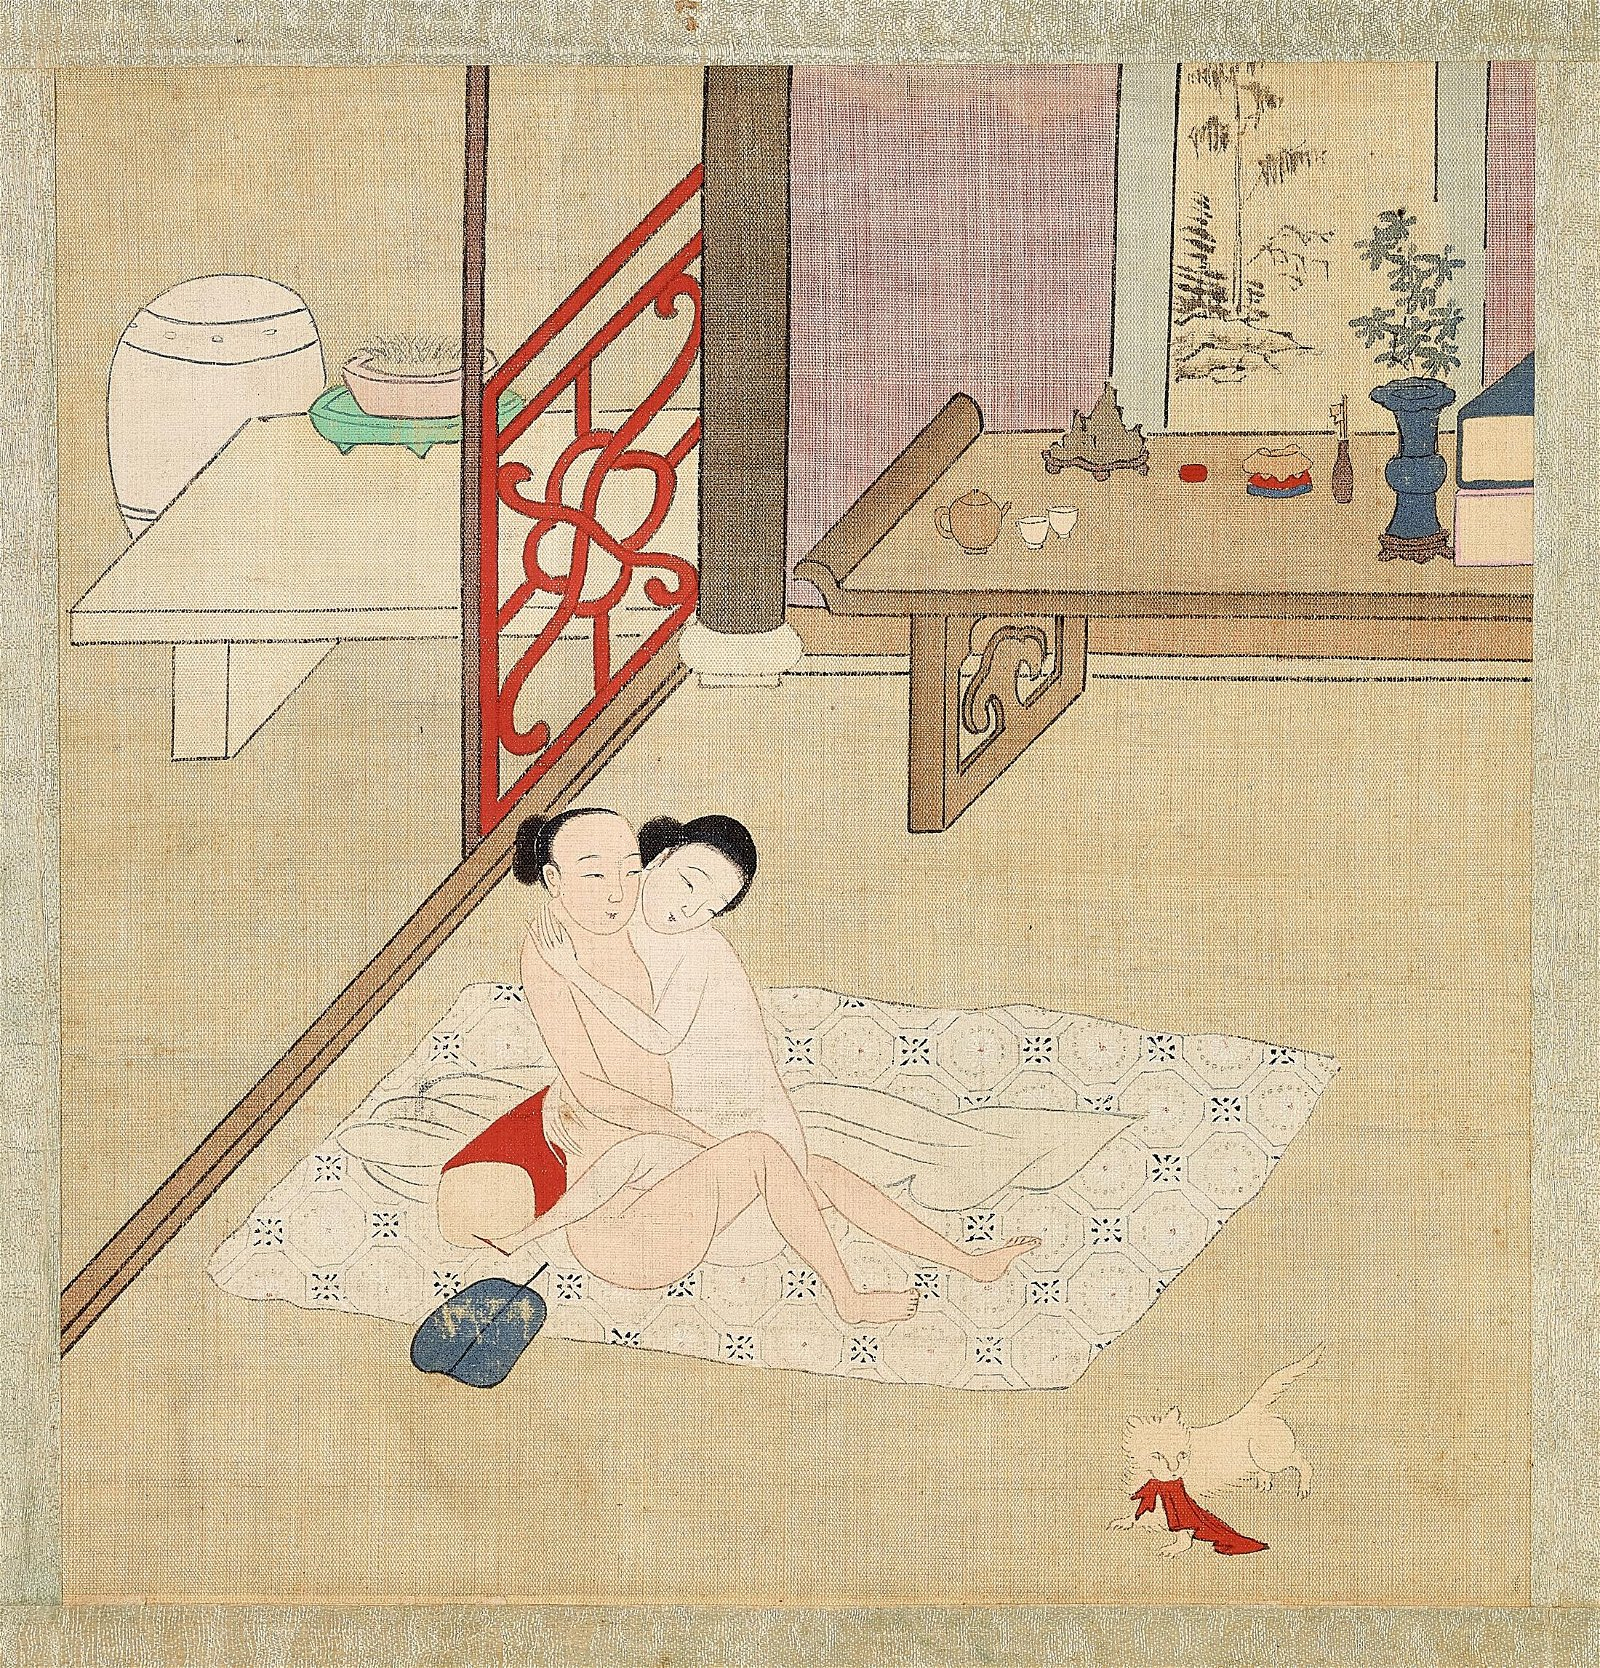 AN UNUSUAL EROTIC PAINTING, QING